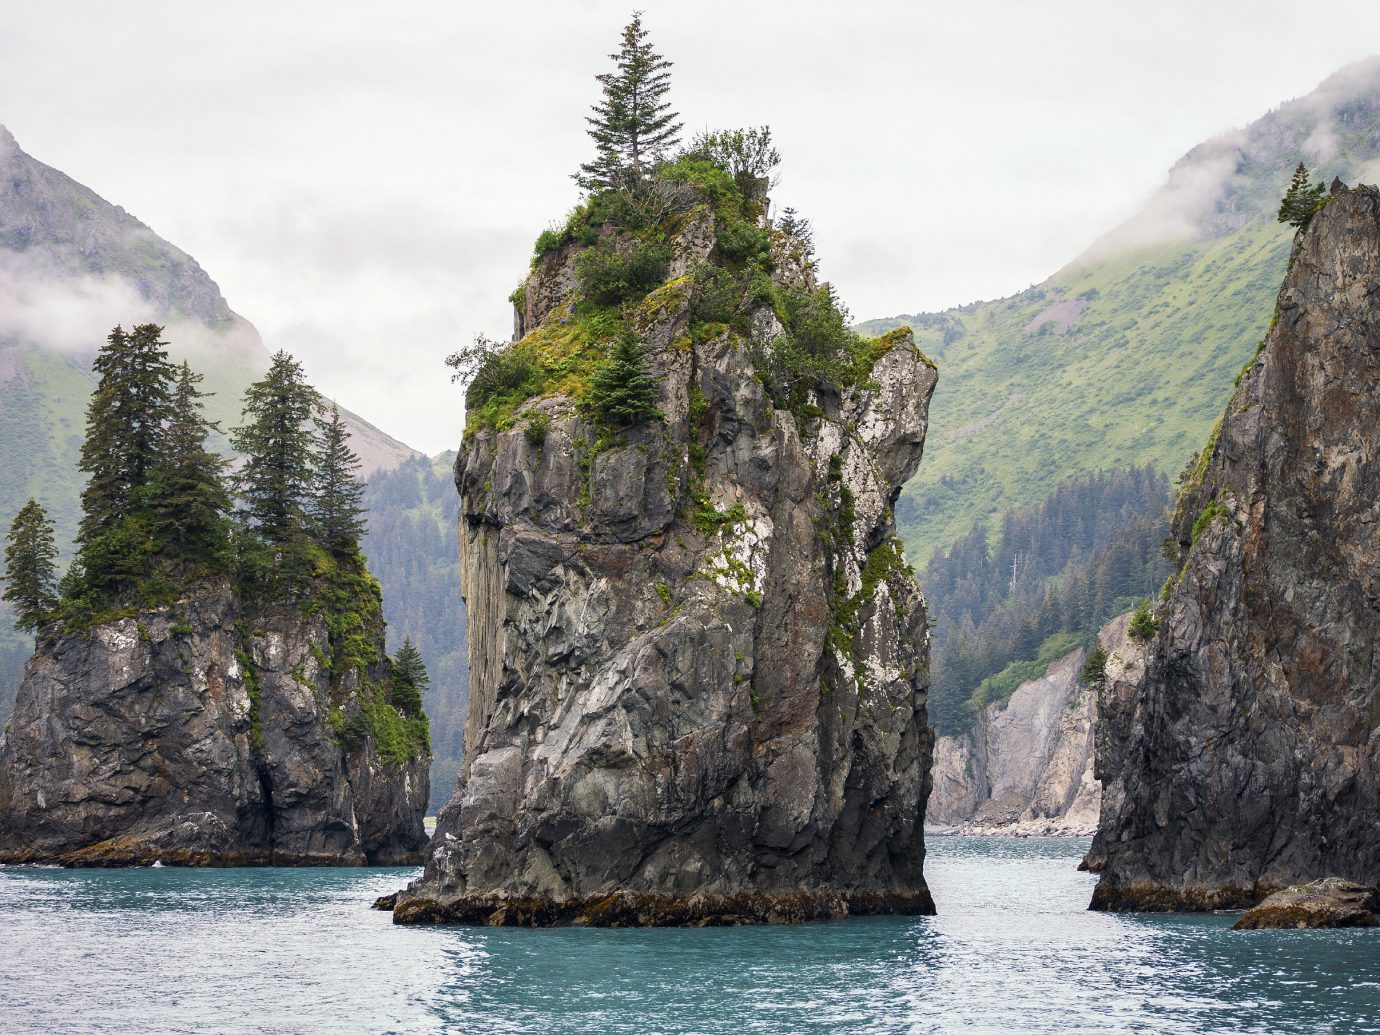 Natural wonders Offbeat Scenic views mountain outdoor water Nature rock landform geographical feature cliff Coast Sea bay terrain rocky background fjord cape stack formation cove islet material surrounded hillside Island distance